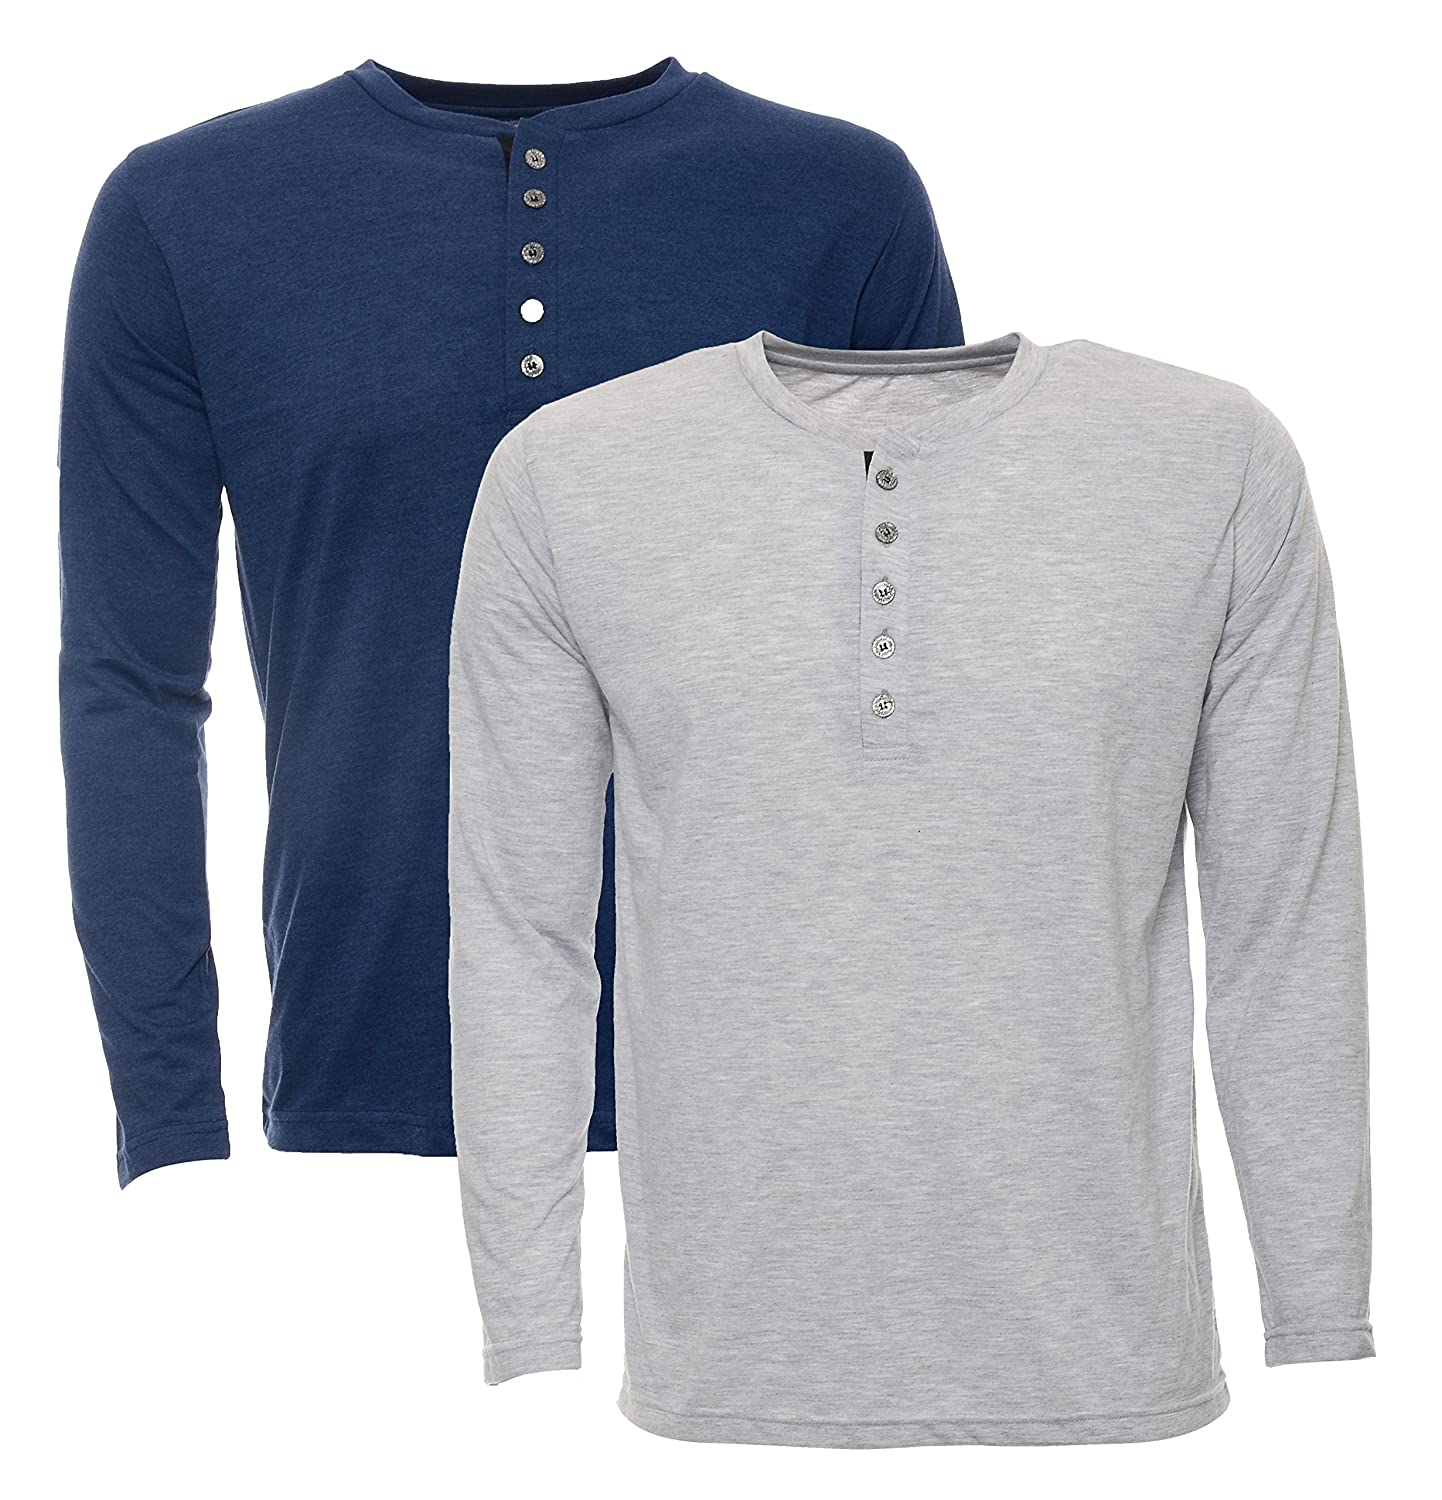 T-Shirt Aarbee Men's Cotton T-Shirt - Combo of 2: Amazon.in: Clothing & Accessories